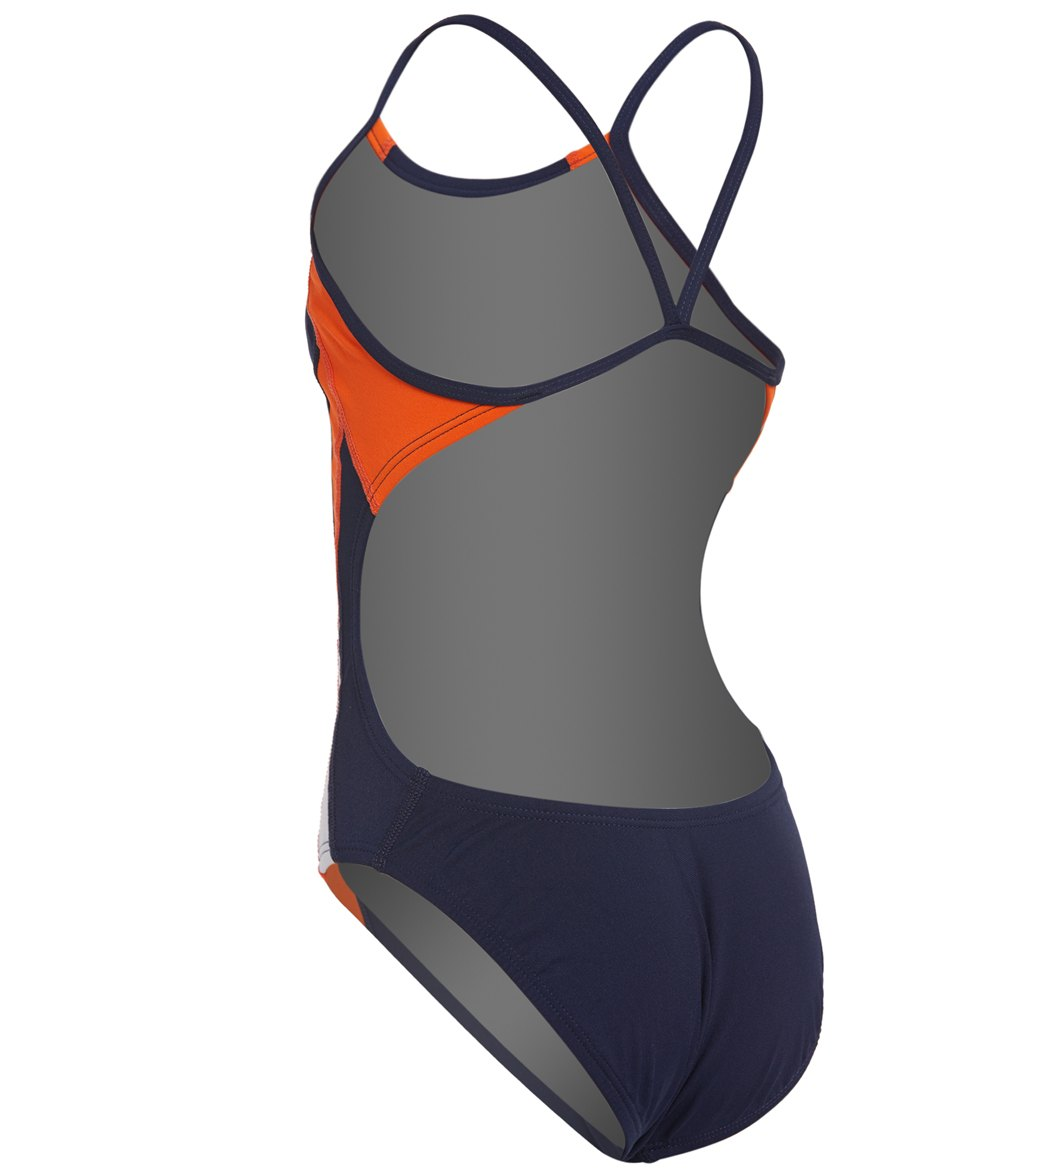 3f11cd17bb4 Nike Girls  Poly Color Surge Cut Out One Piece Swimsuit at ...